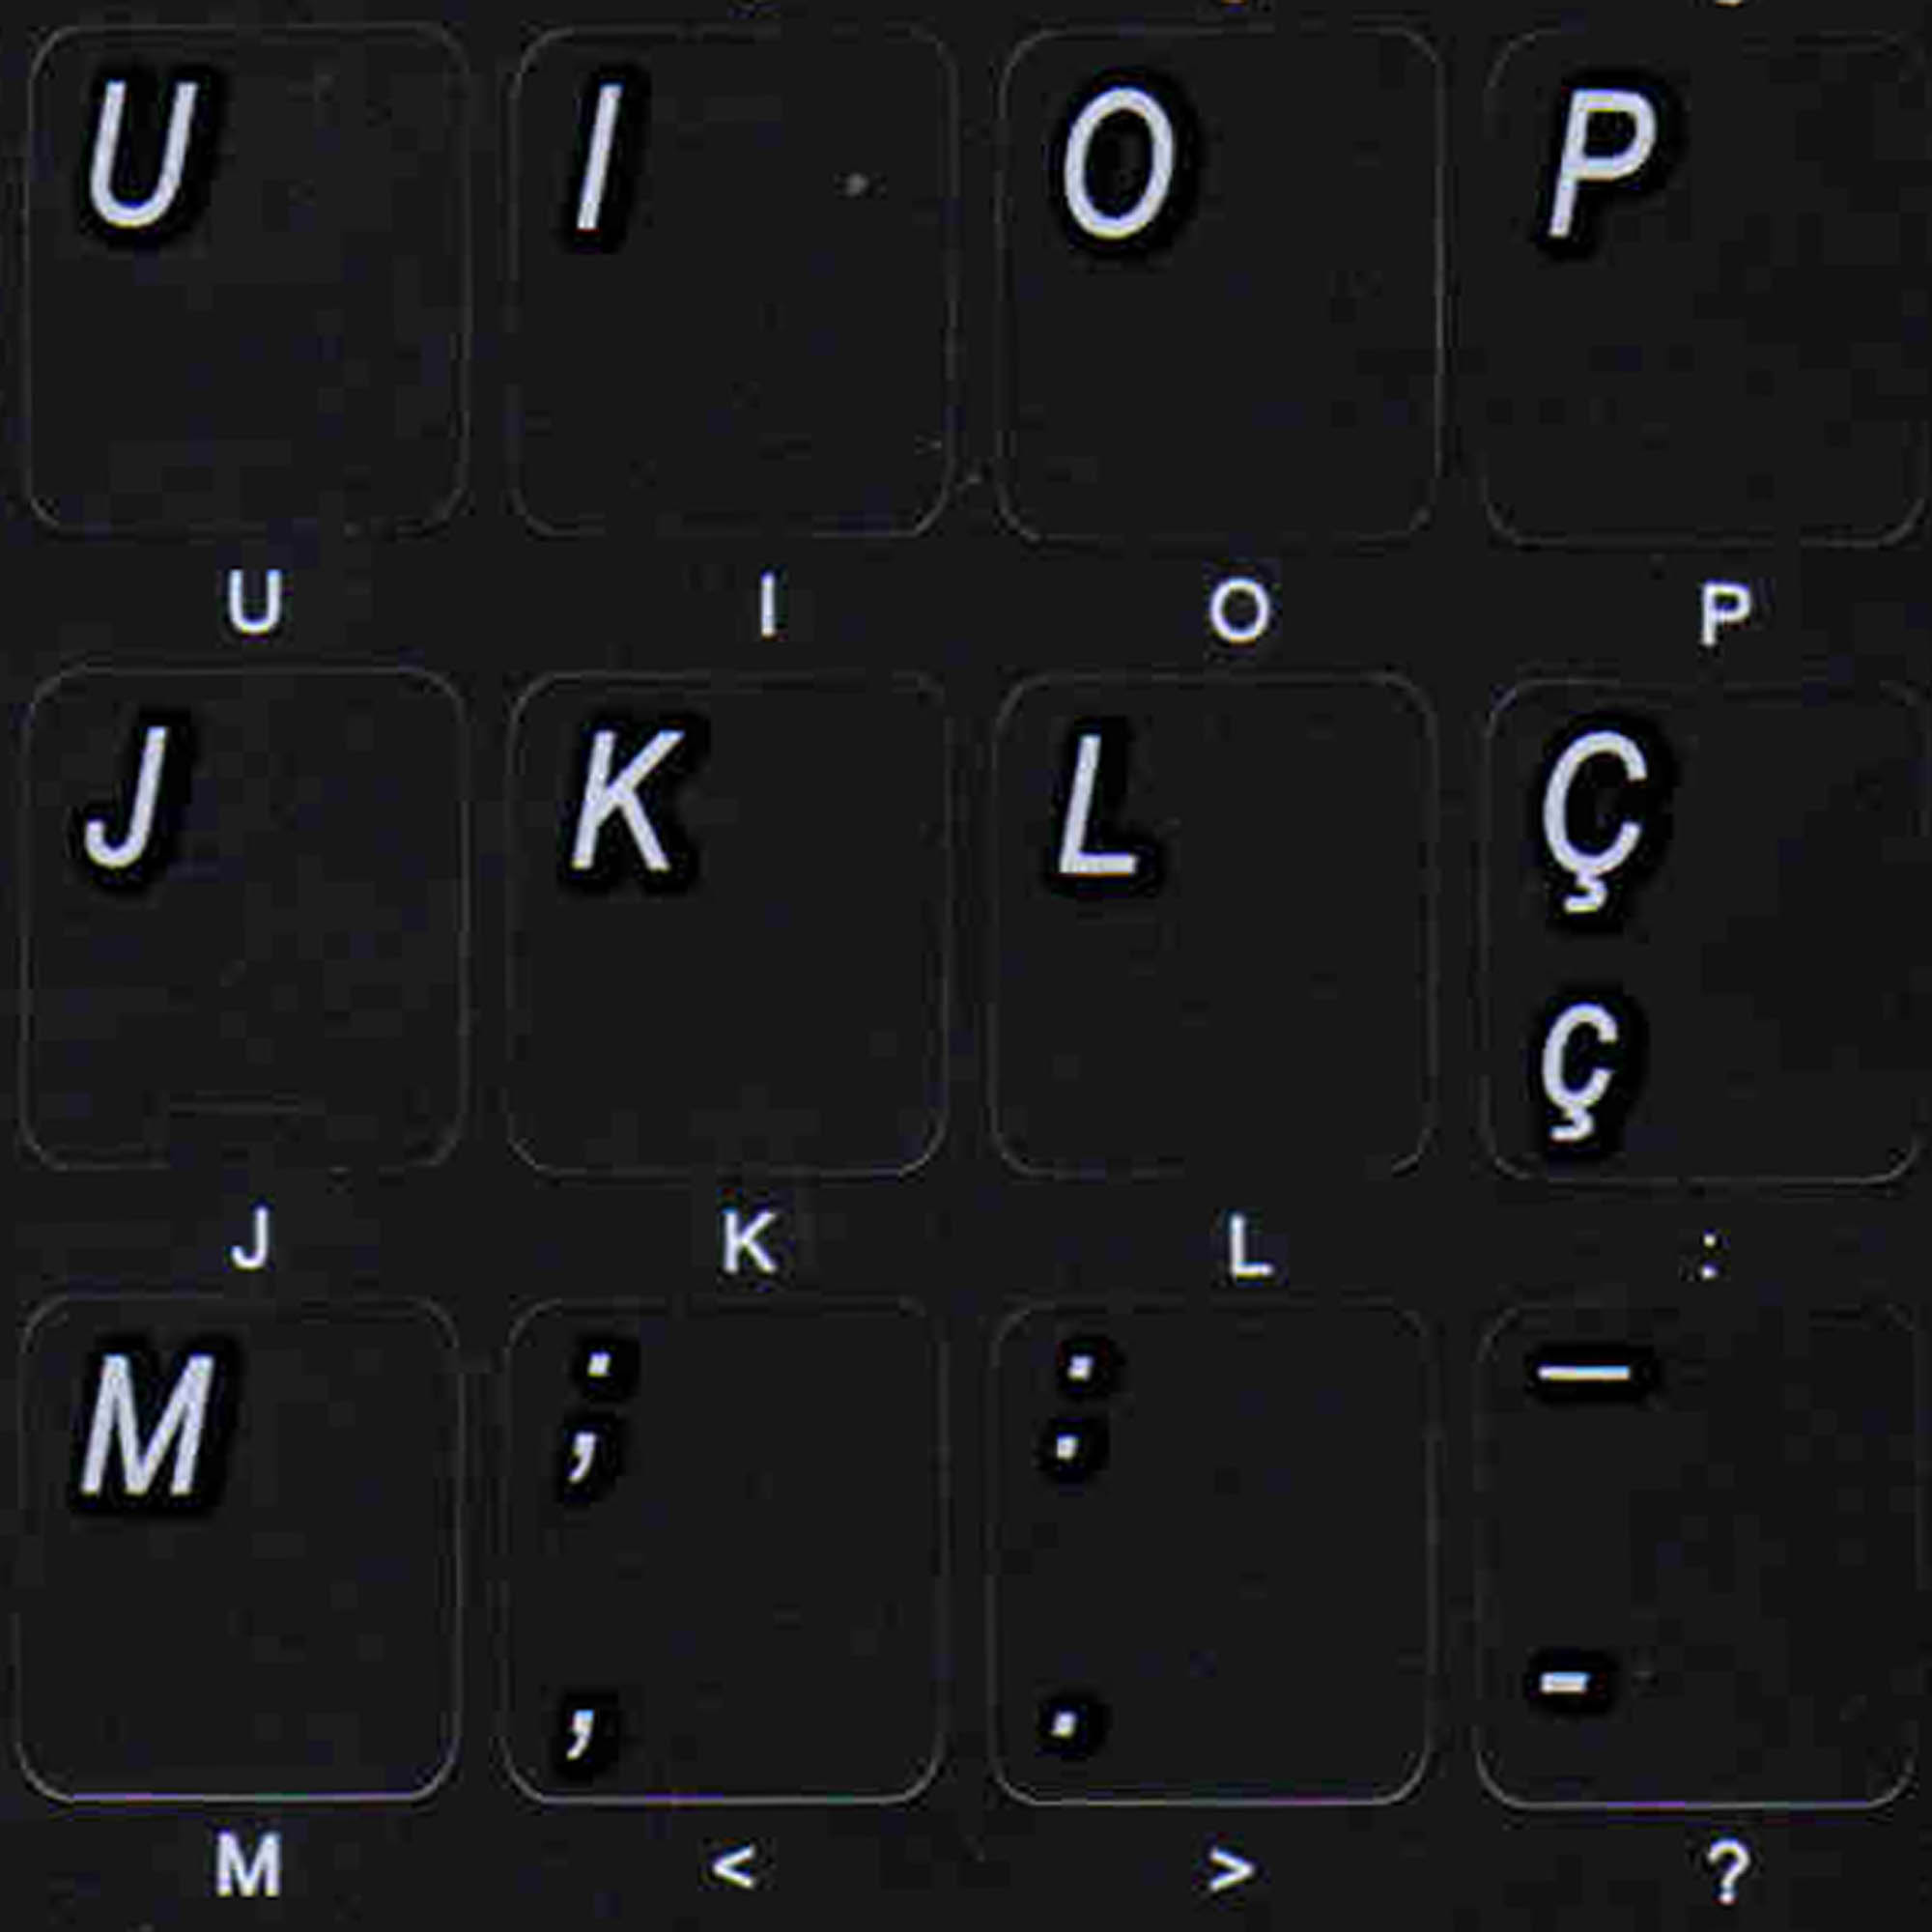 Portuguese traditional keyboard stickers non transparent black